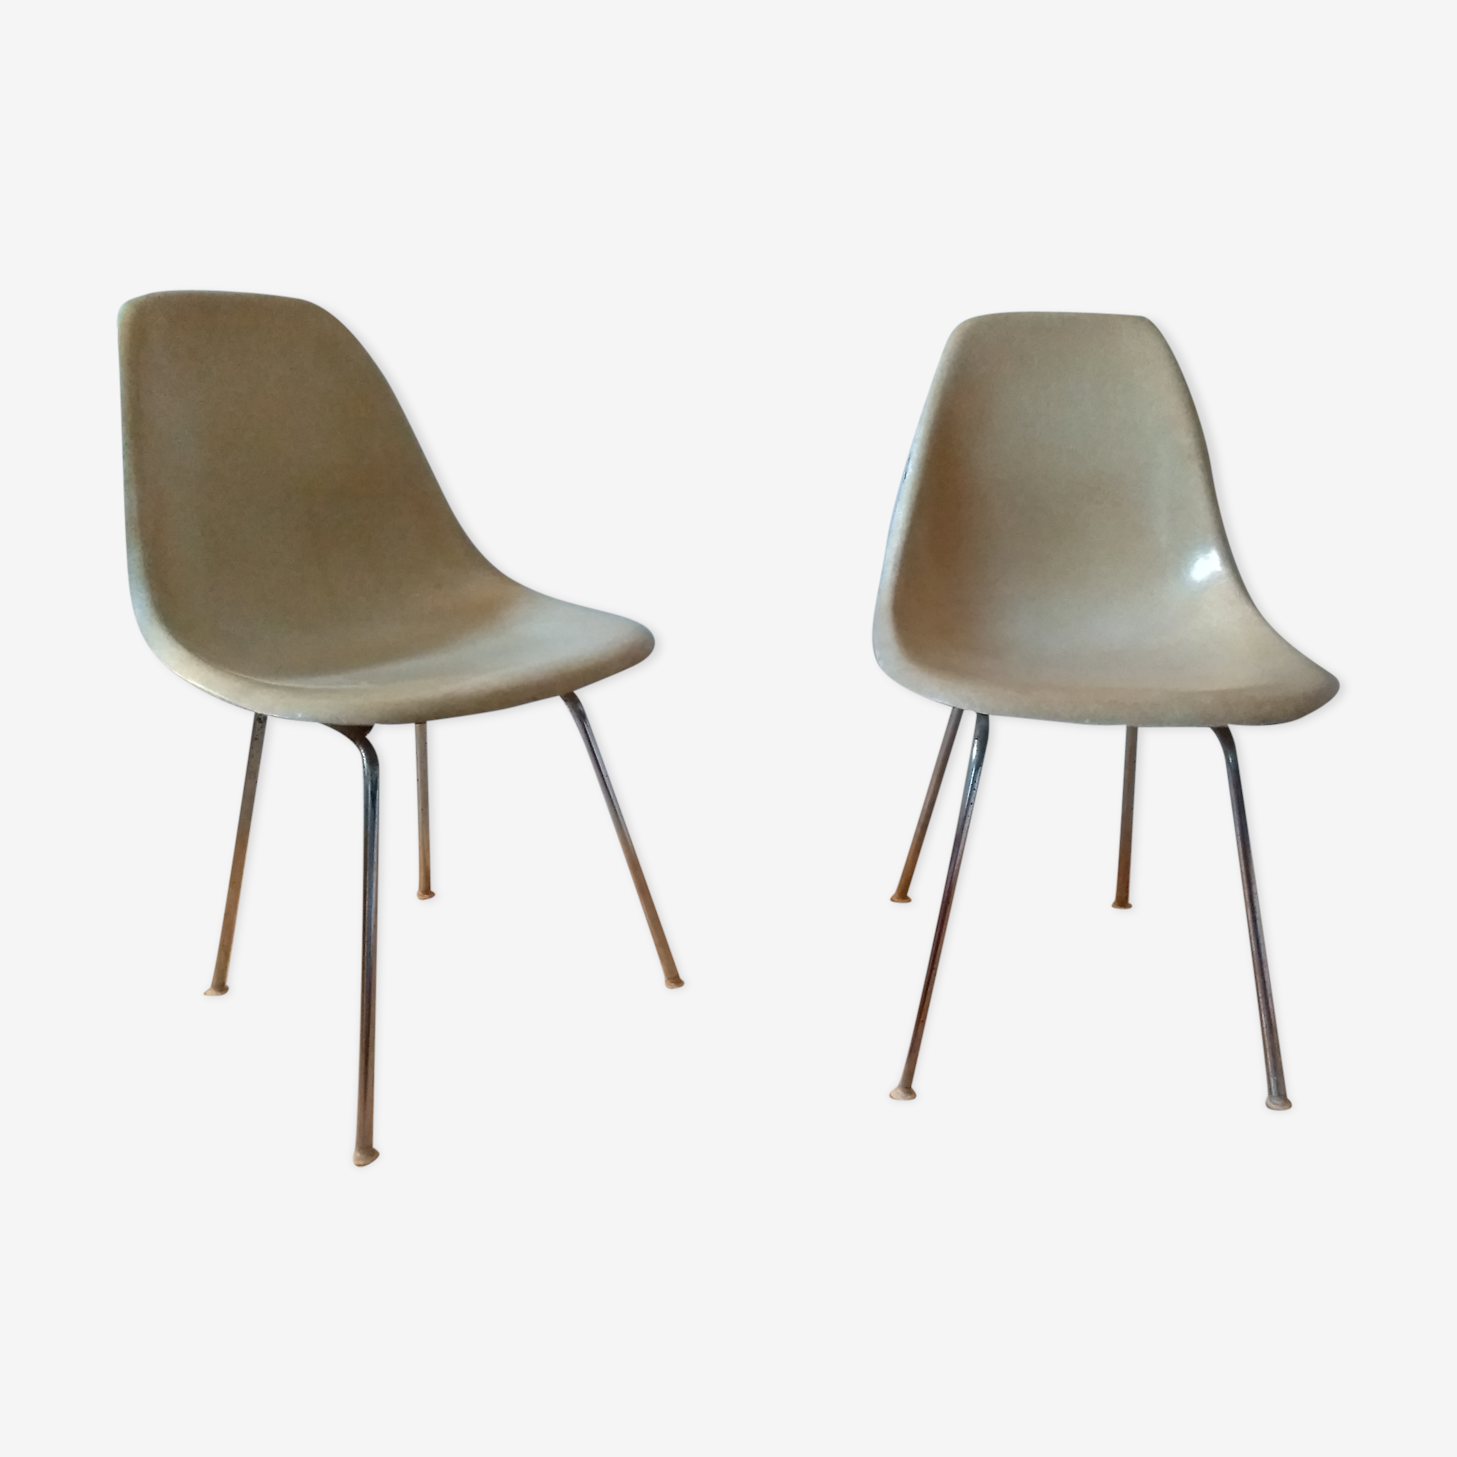 Pair of chairs DSX by Charles & Ray Eames for Herman Miller 50/60